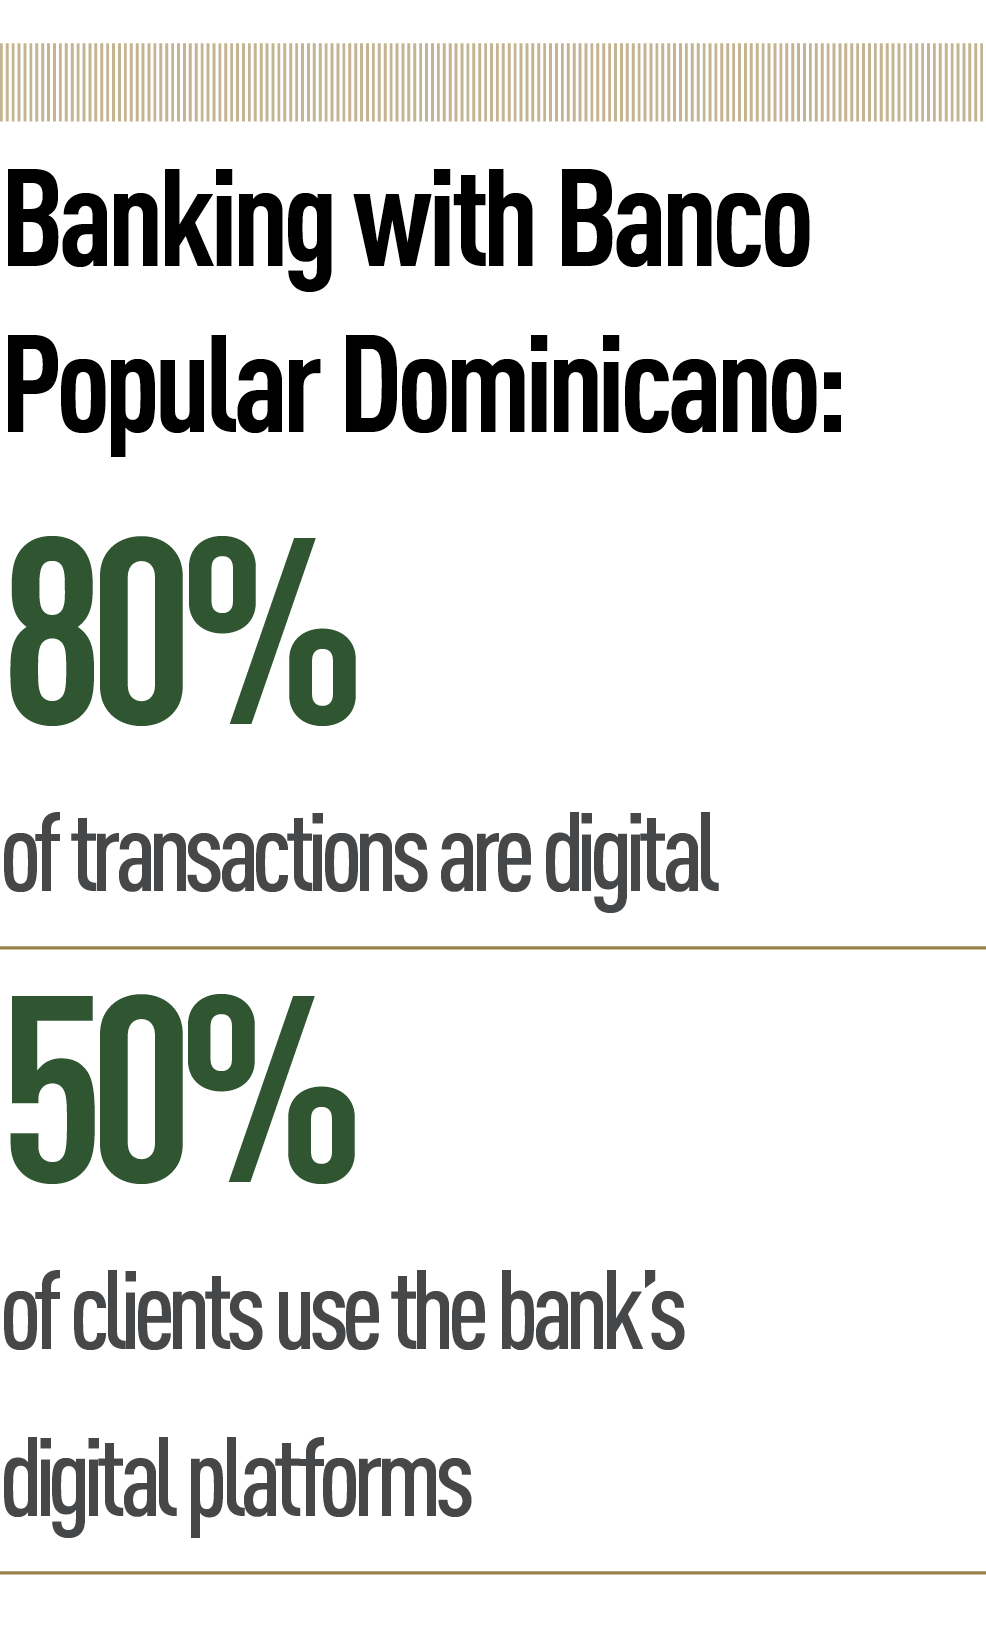 Banco Popular Dominicano Leads The Way With A New Suite Of Digital Products World Finance